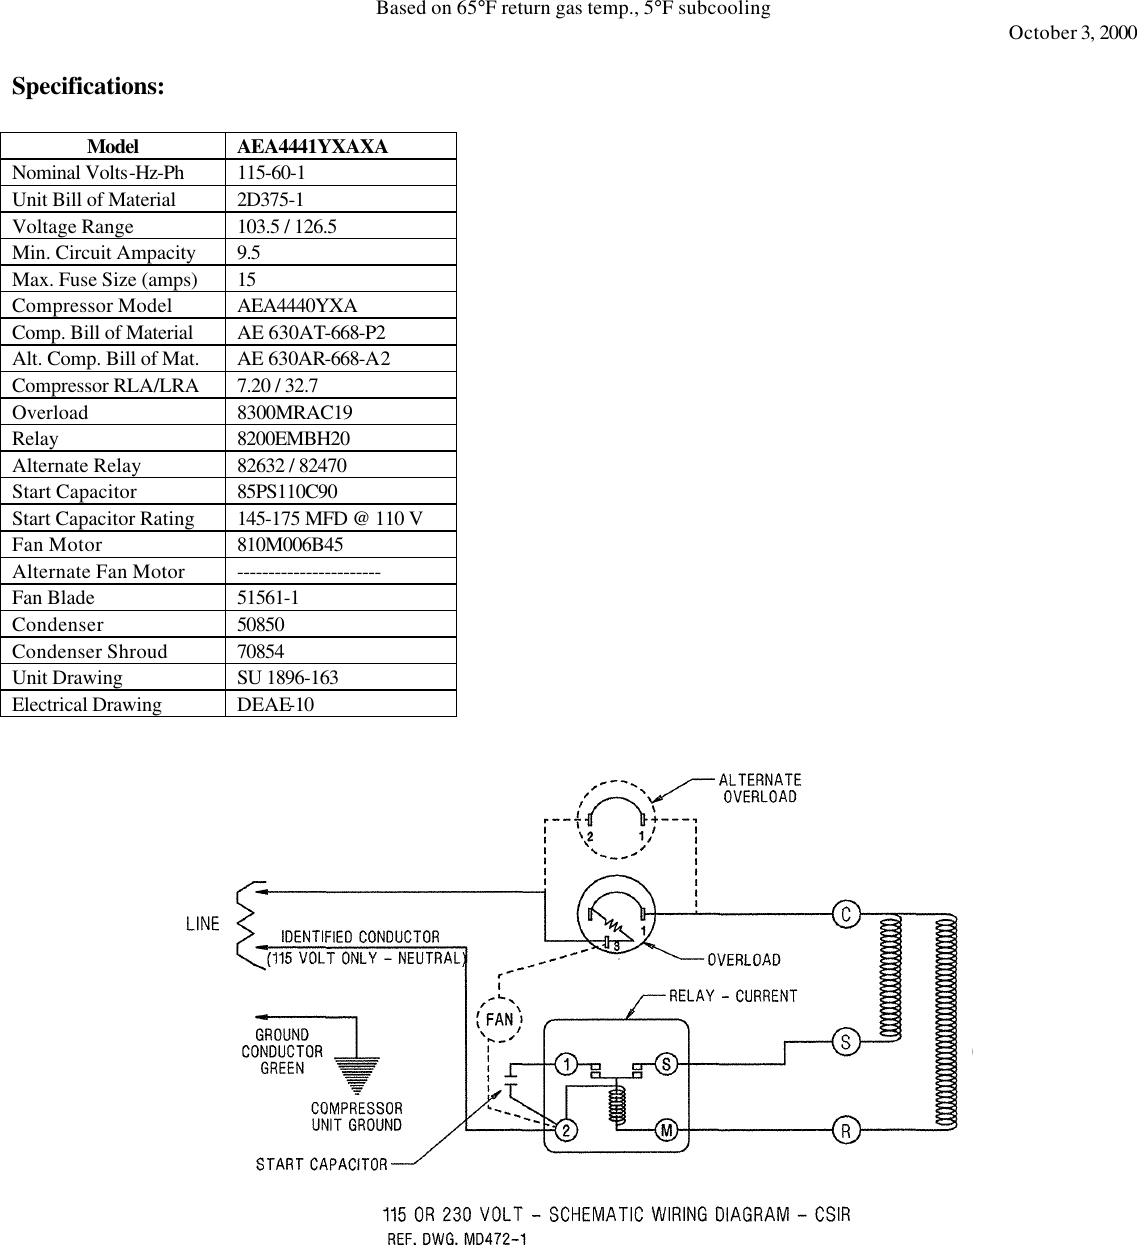 Tecumseh Aea4441yxaxa Performance Data Sheet Aea4441yx Xa Wiring Diagram Page 2 Of